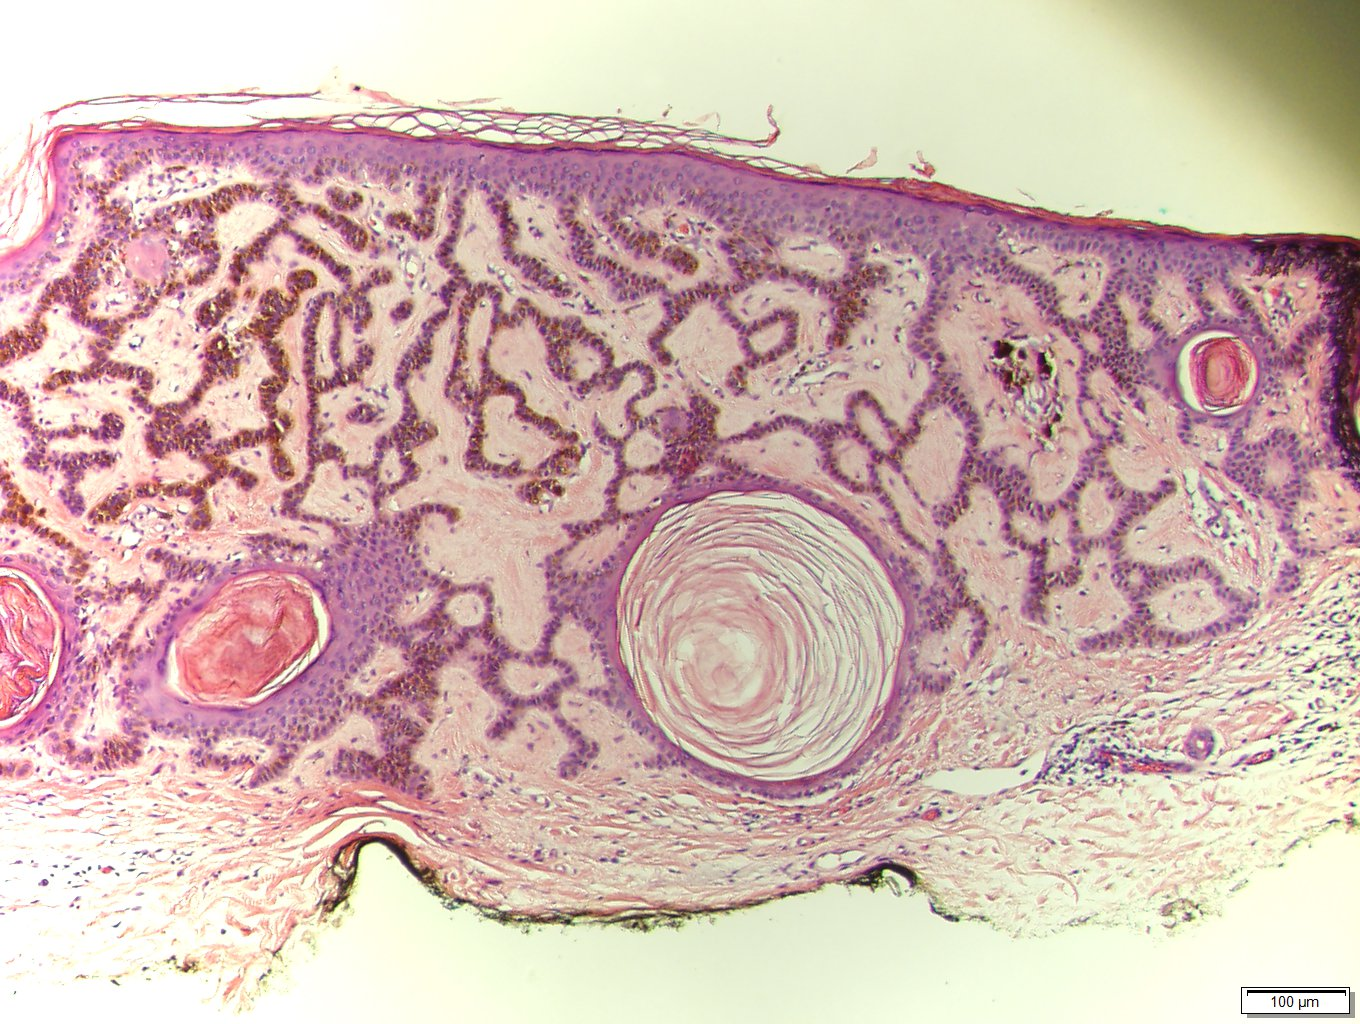 squamous papilloma pathology outlines skin